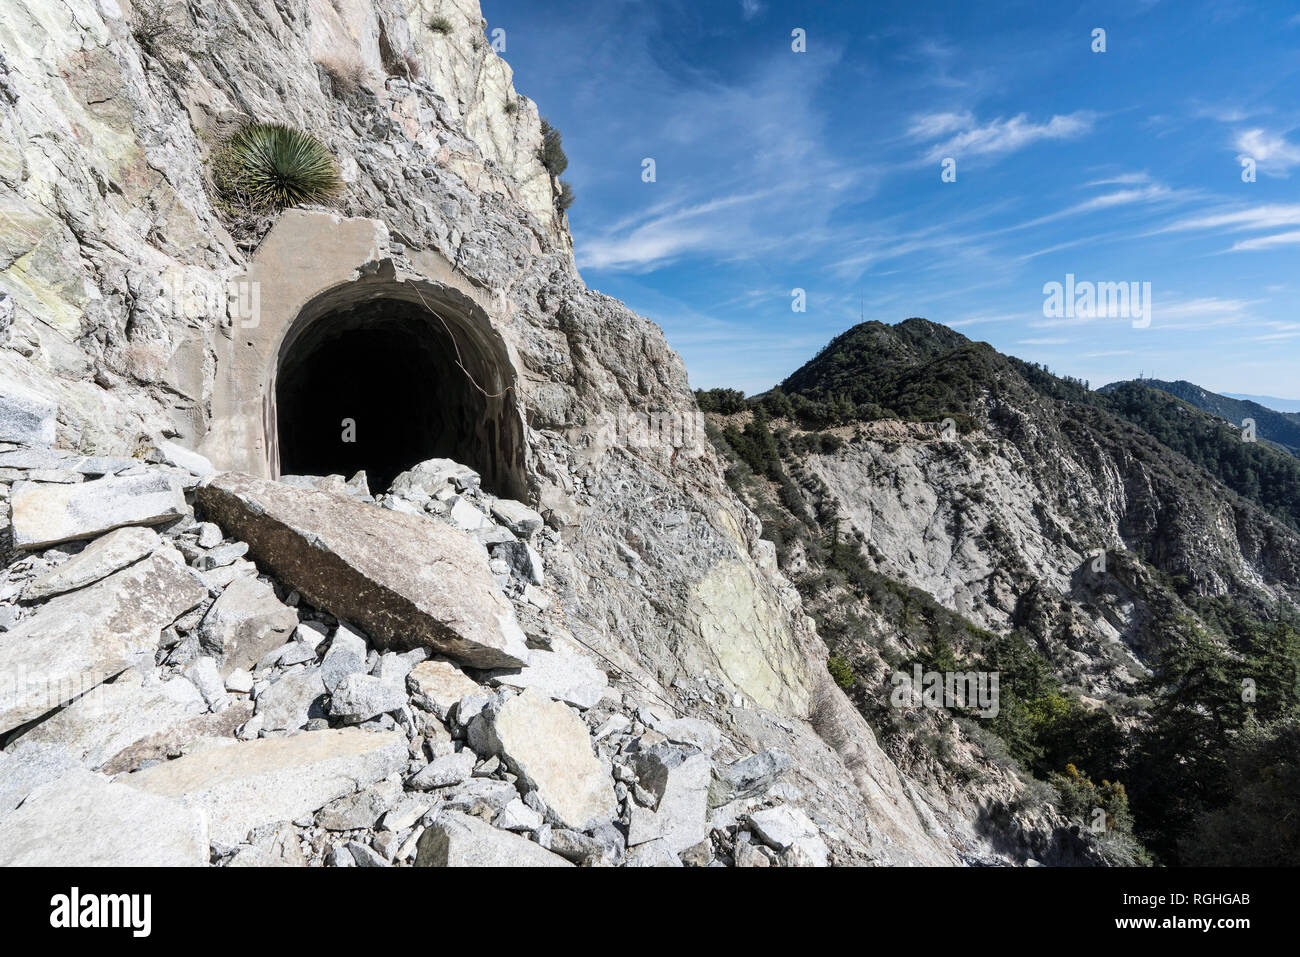 Rock slide damage at historic Mueller Tunnel near Mt Wilson in the San Gabriel Mountains and Angeles National Forest above Los Angeles, California. - Stock Image